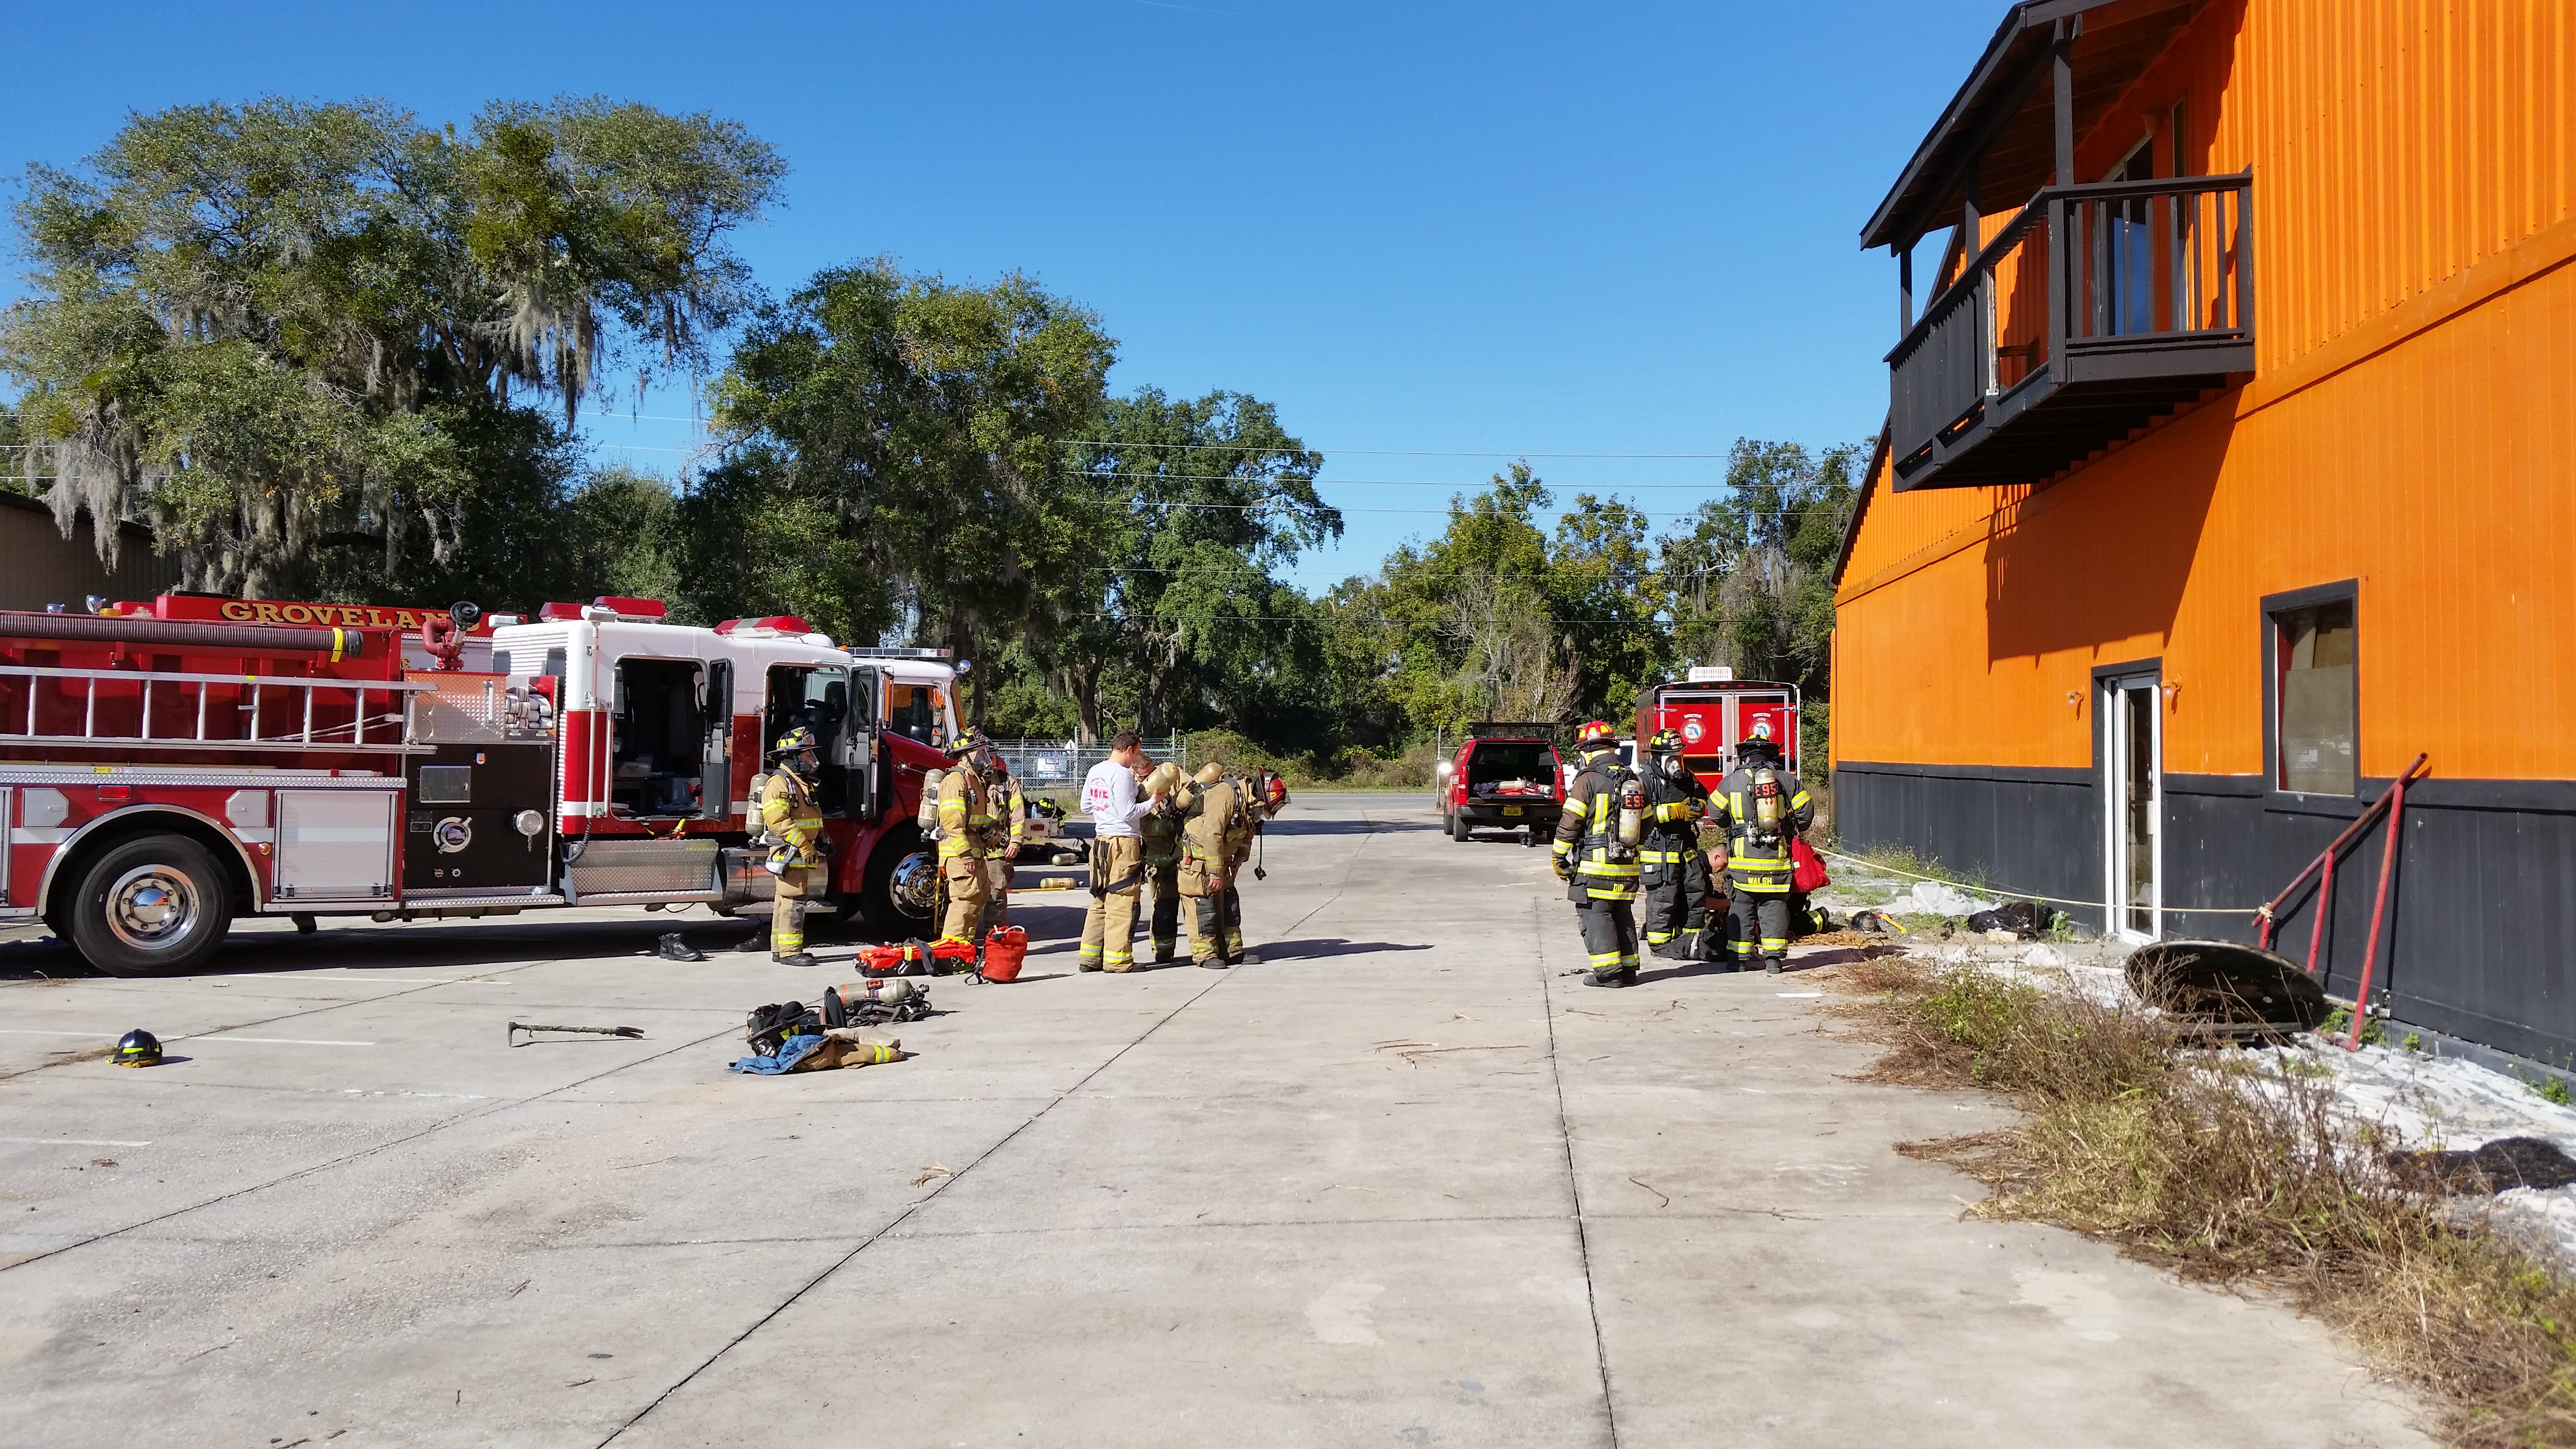 Fire | Groveland, FL - Official Website